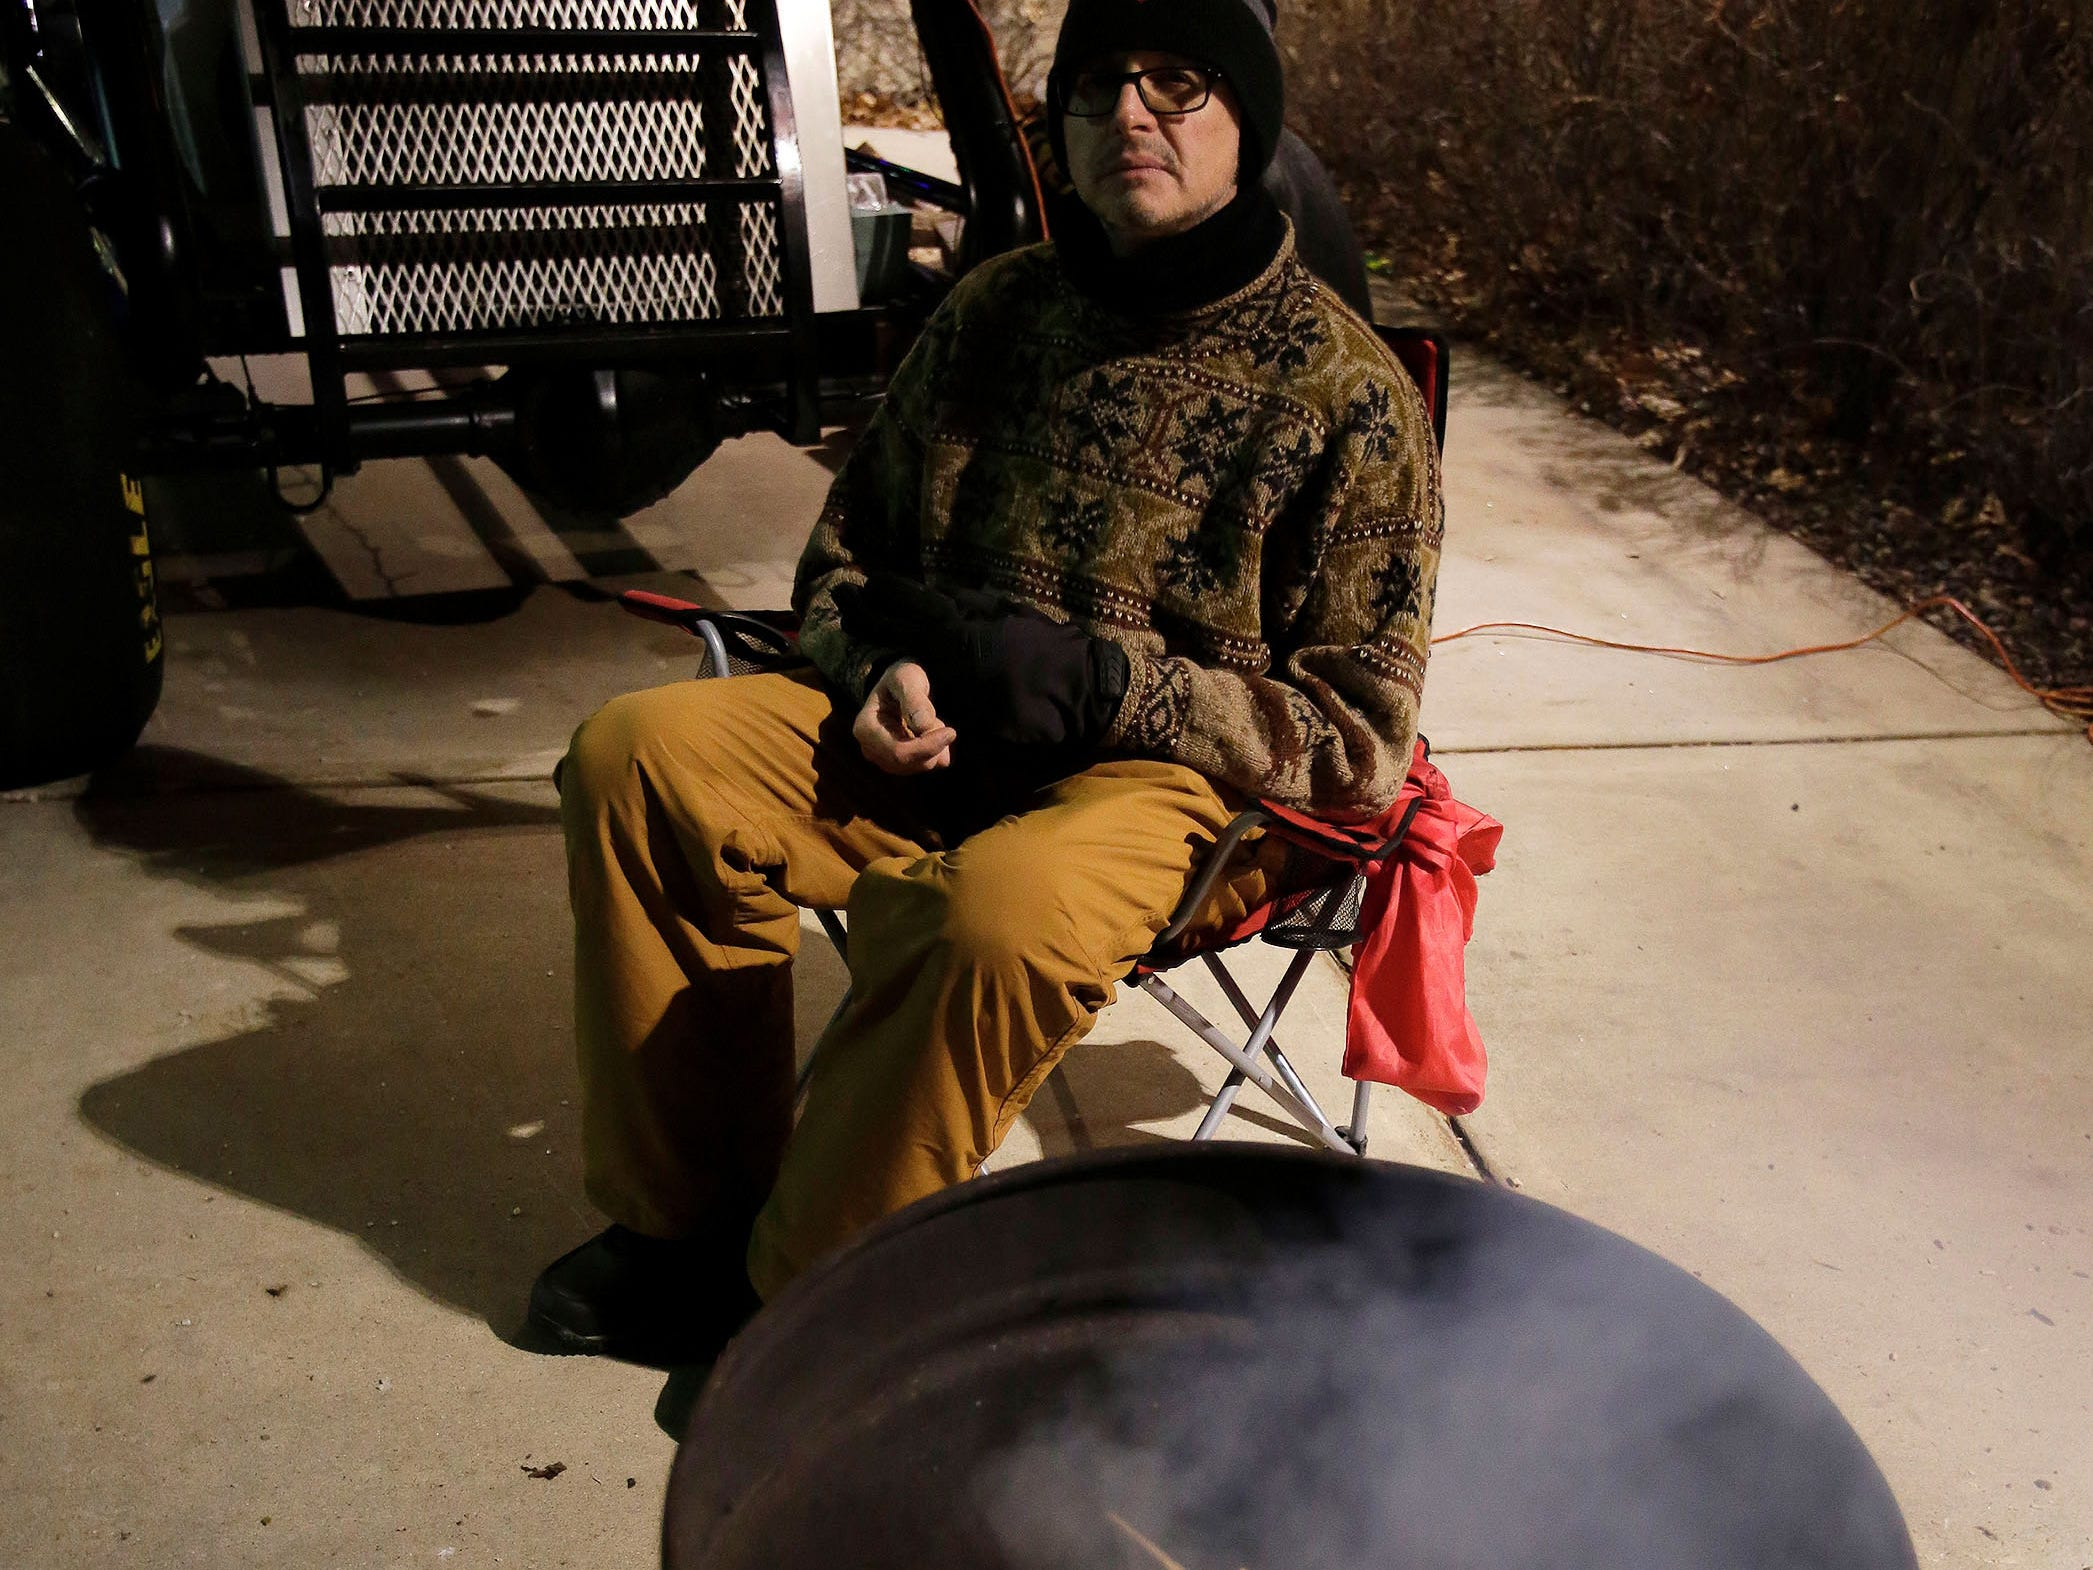 Salvation Army Captain Daryl Mangeri sits by a small fire he built in a barrel out side of Festival Foods, Wednesday, December 12, 2018, in Sheboygan, Wis. Mangeri is participating in Freezing for a Reason, which he says is to shine a light on the fact that there are homeless that live among us.